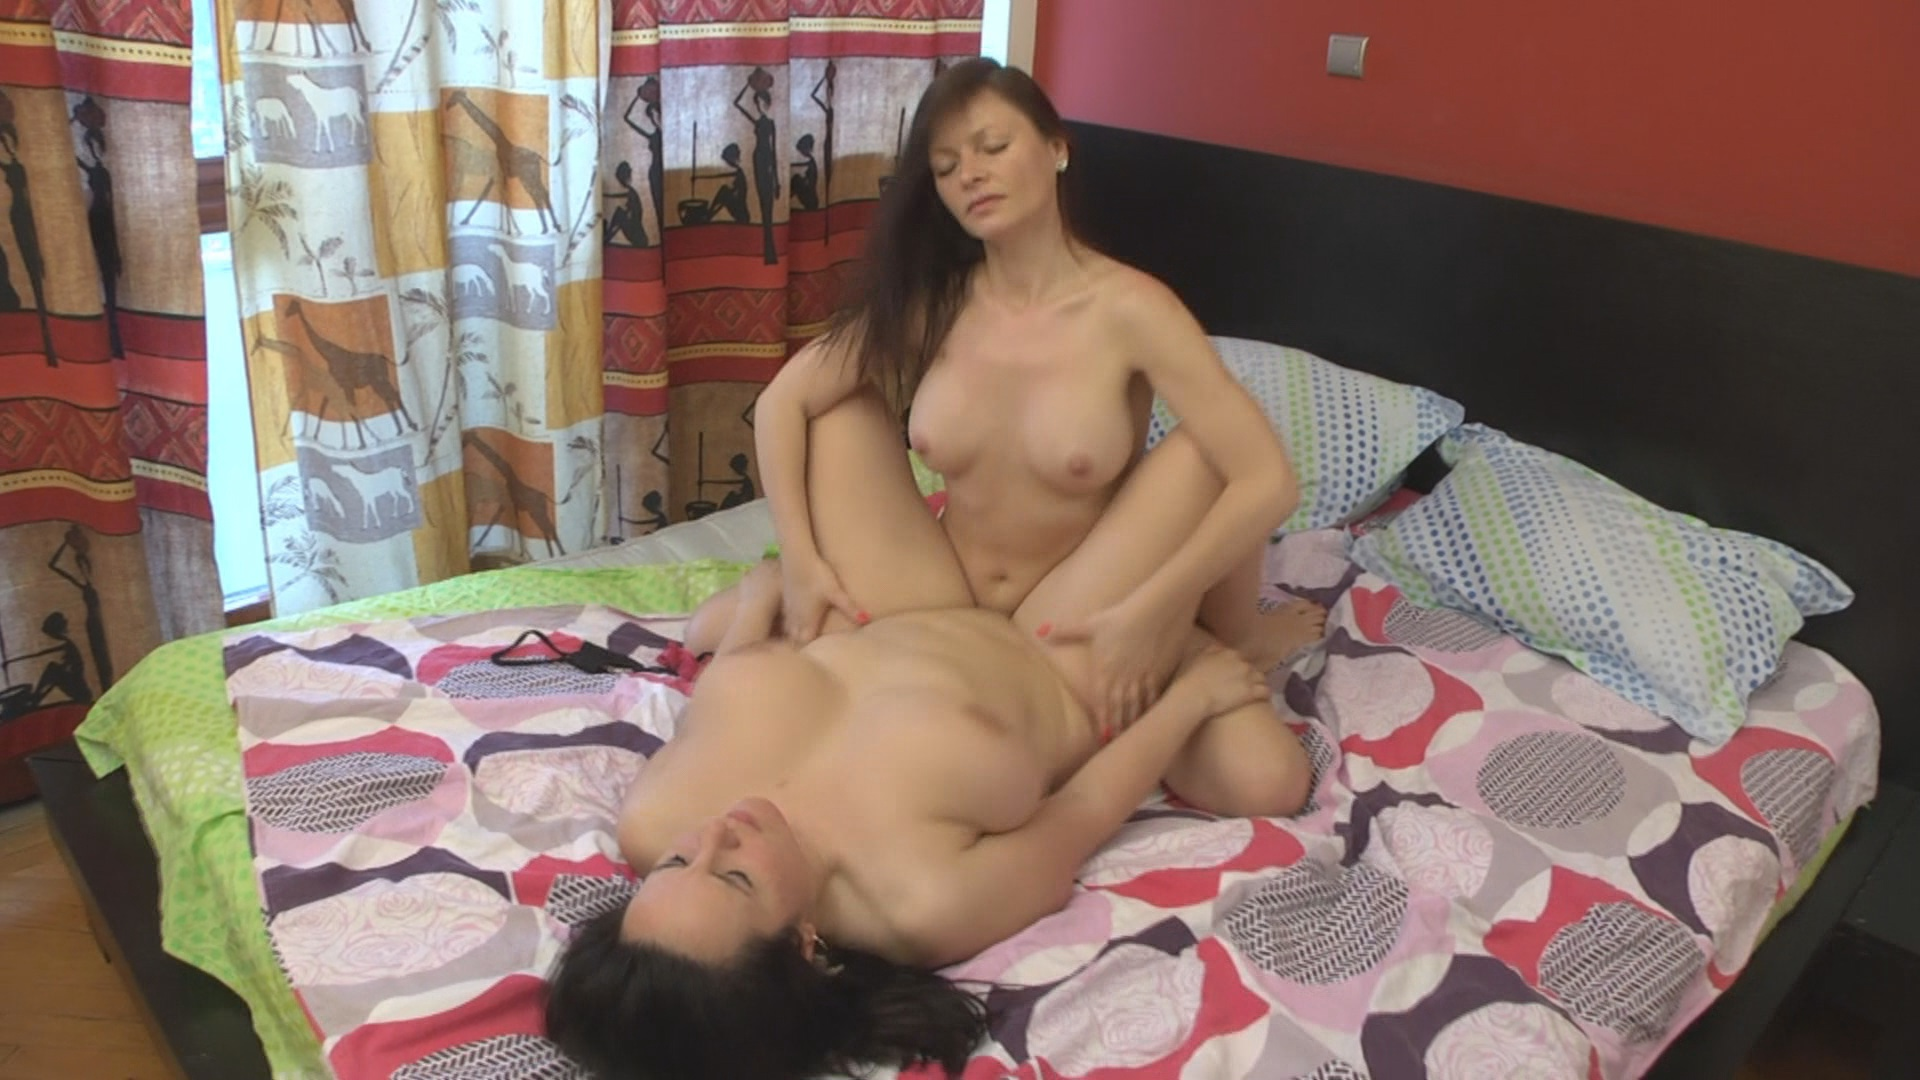 Young Lesbian Lovers 7 xvideos